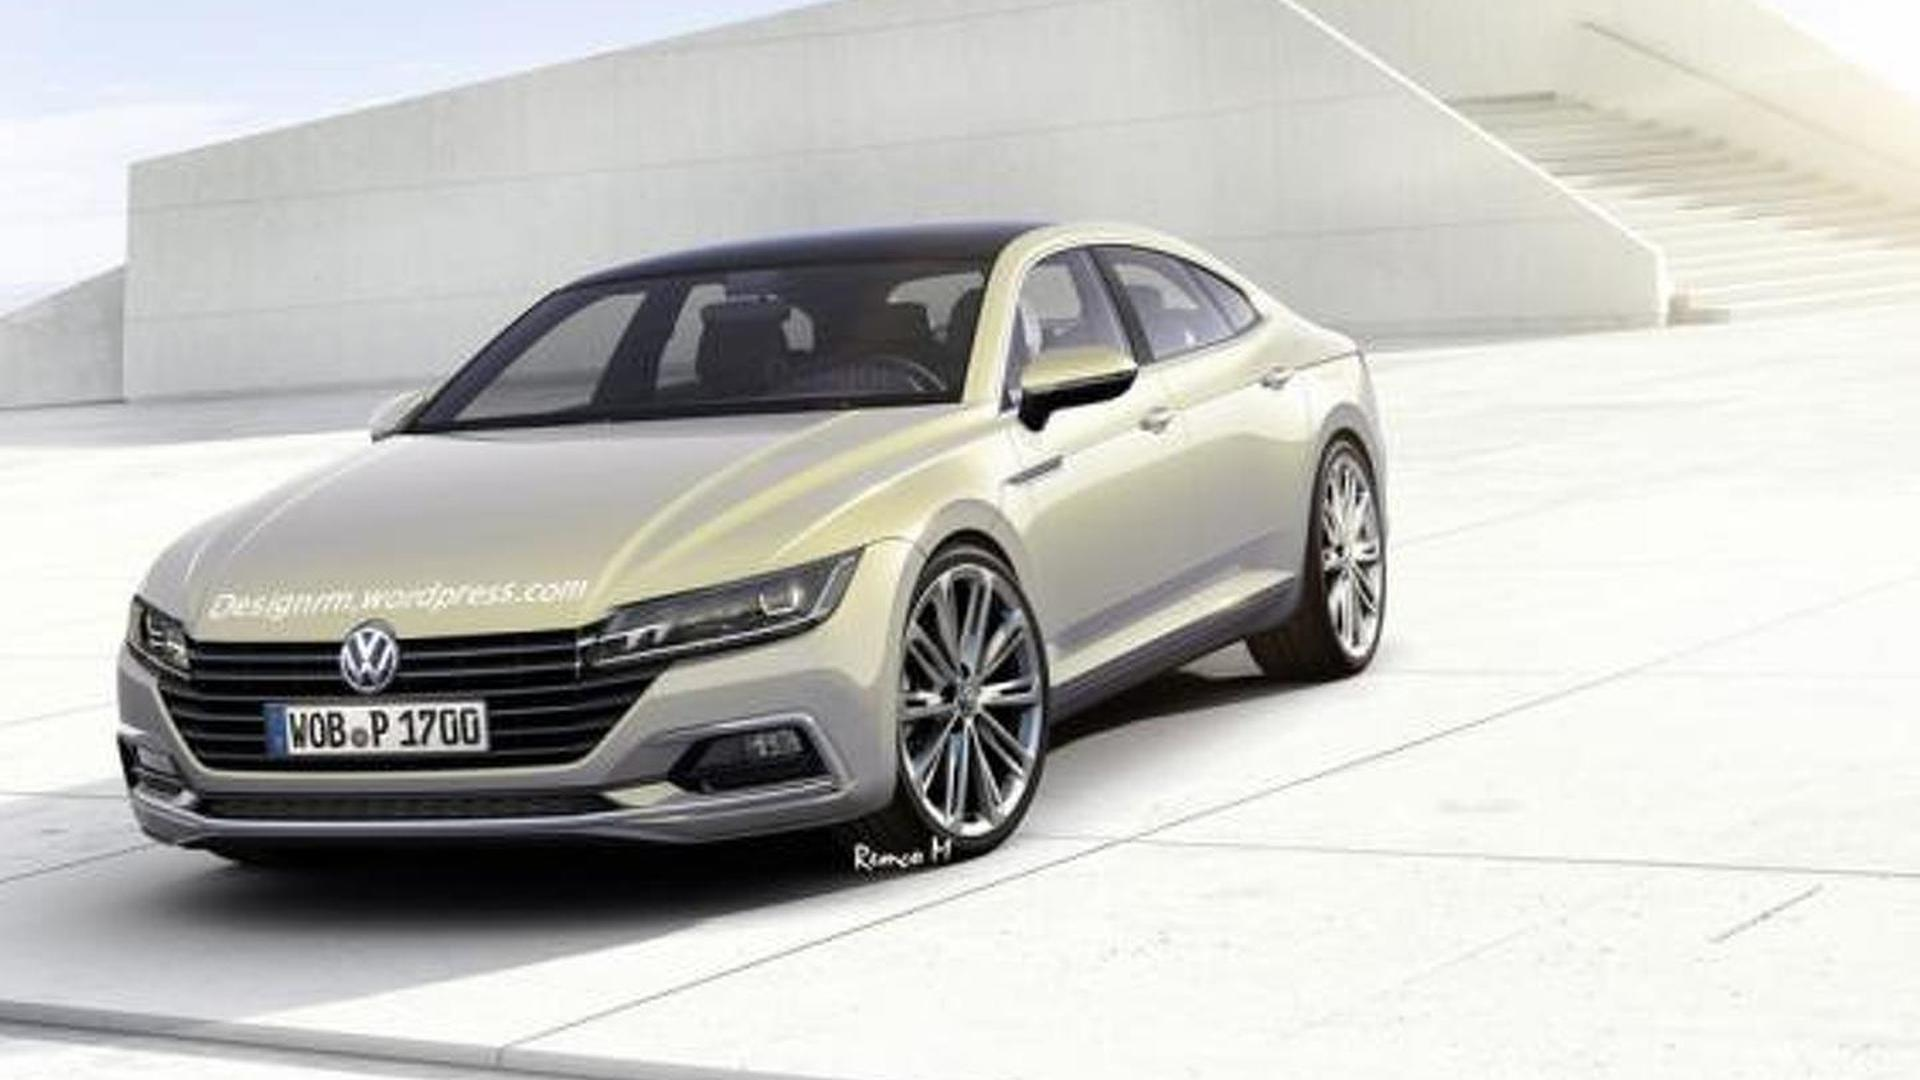 45 The Next Generation Vw Cc Photos